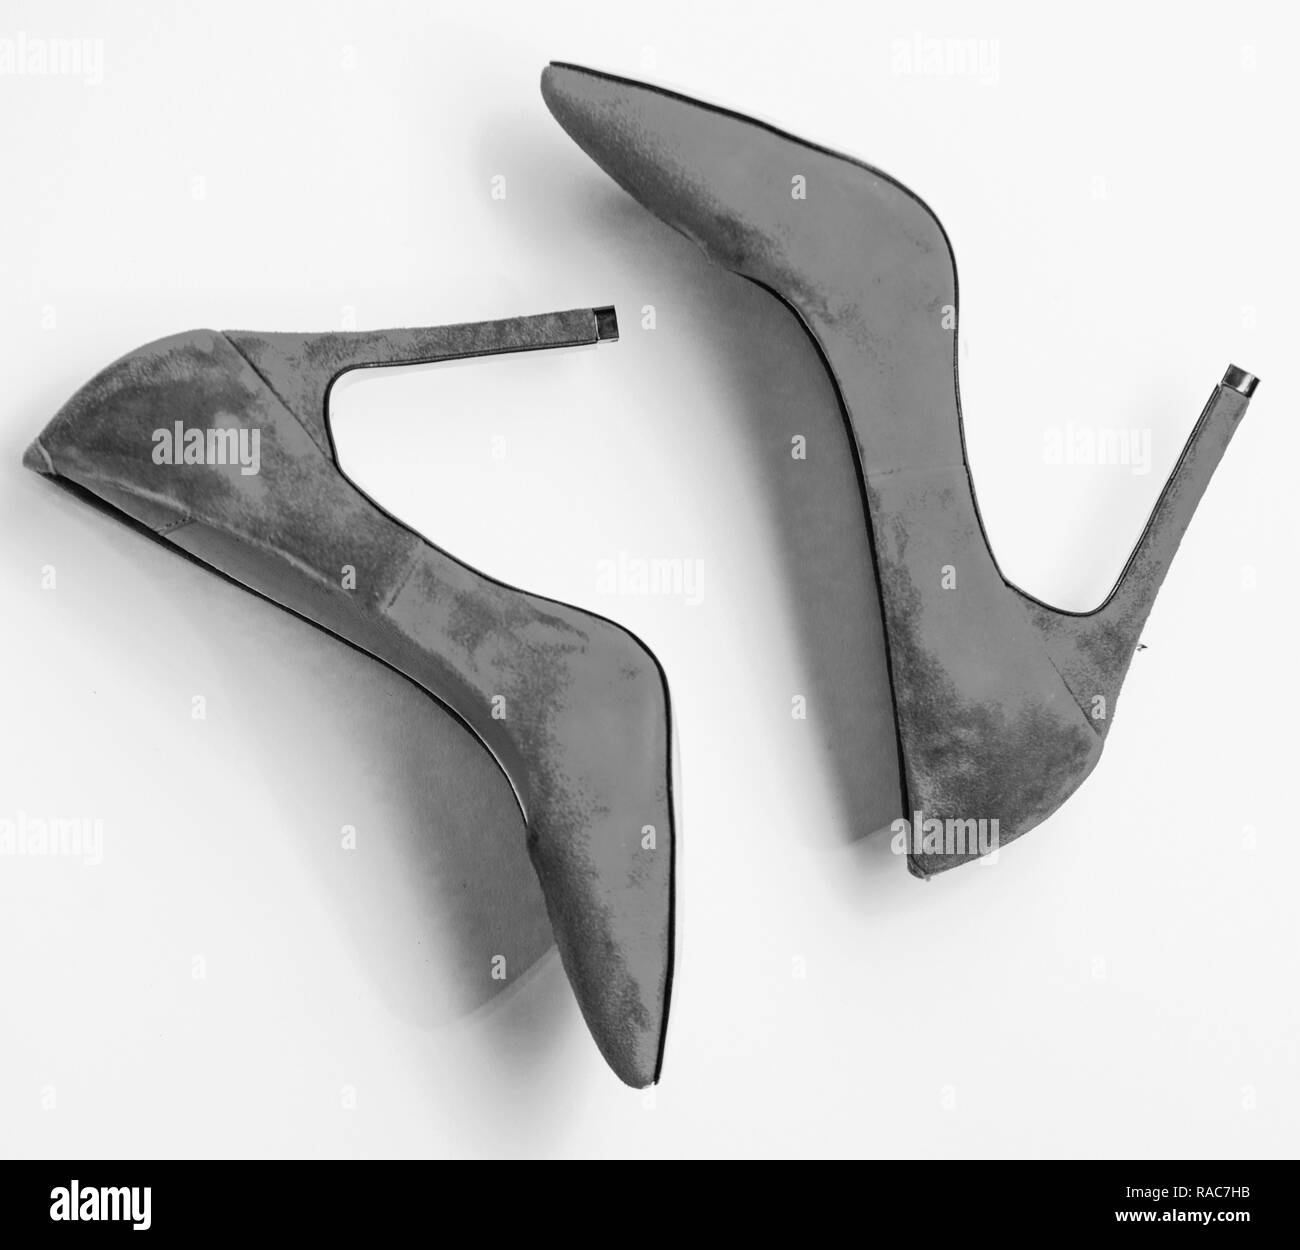 Stiletto Heels Immagini   Stiletto Heels Fotos Stock - Alamy 54cb7f44960